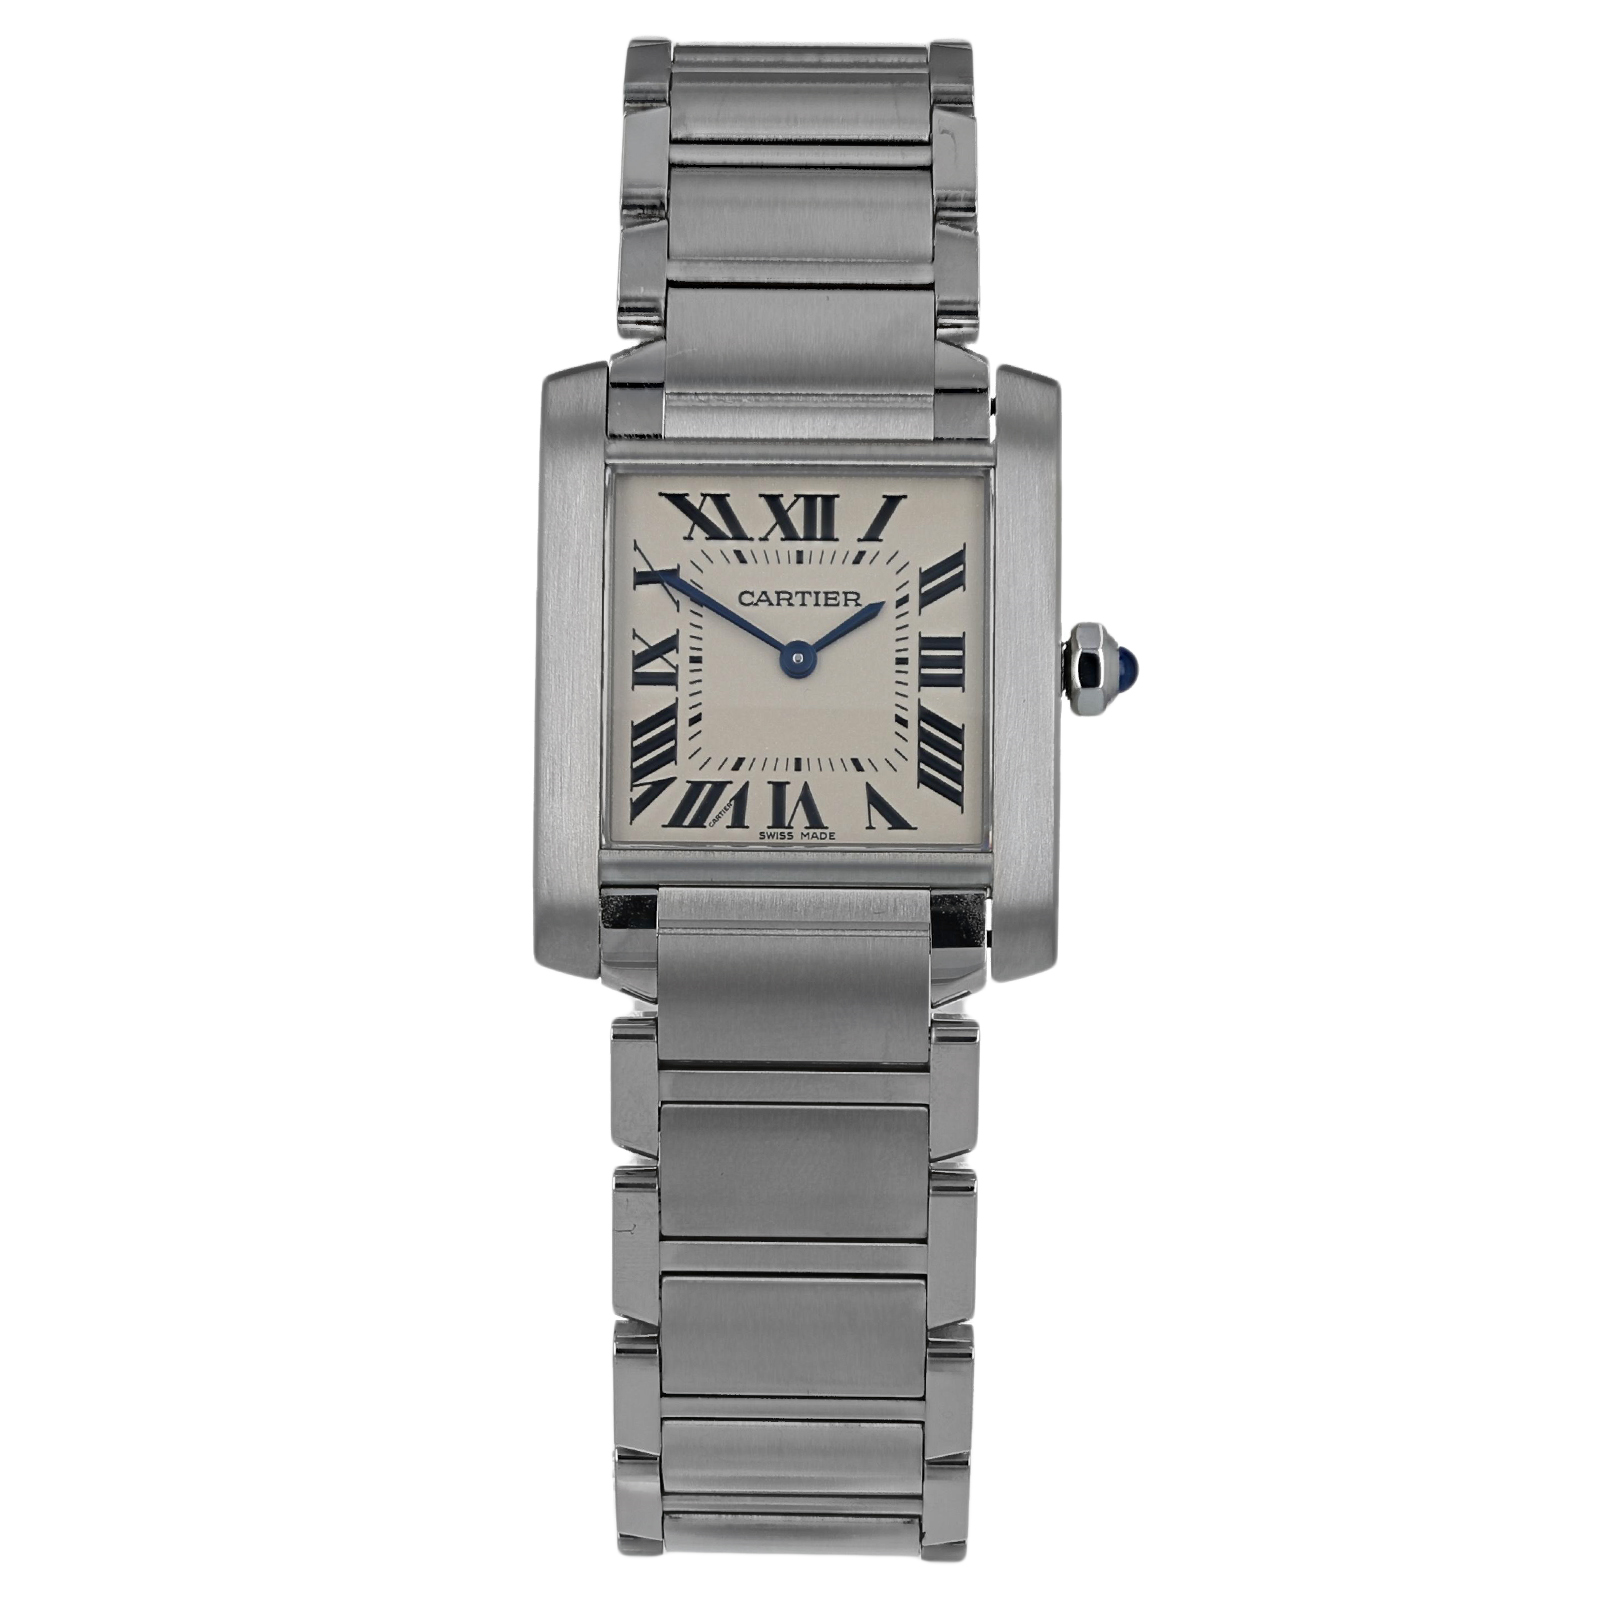 6a24d46aa4479 Pre-Owned Cartier Tank Francaise Ladies Watch WSTA0005 3751